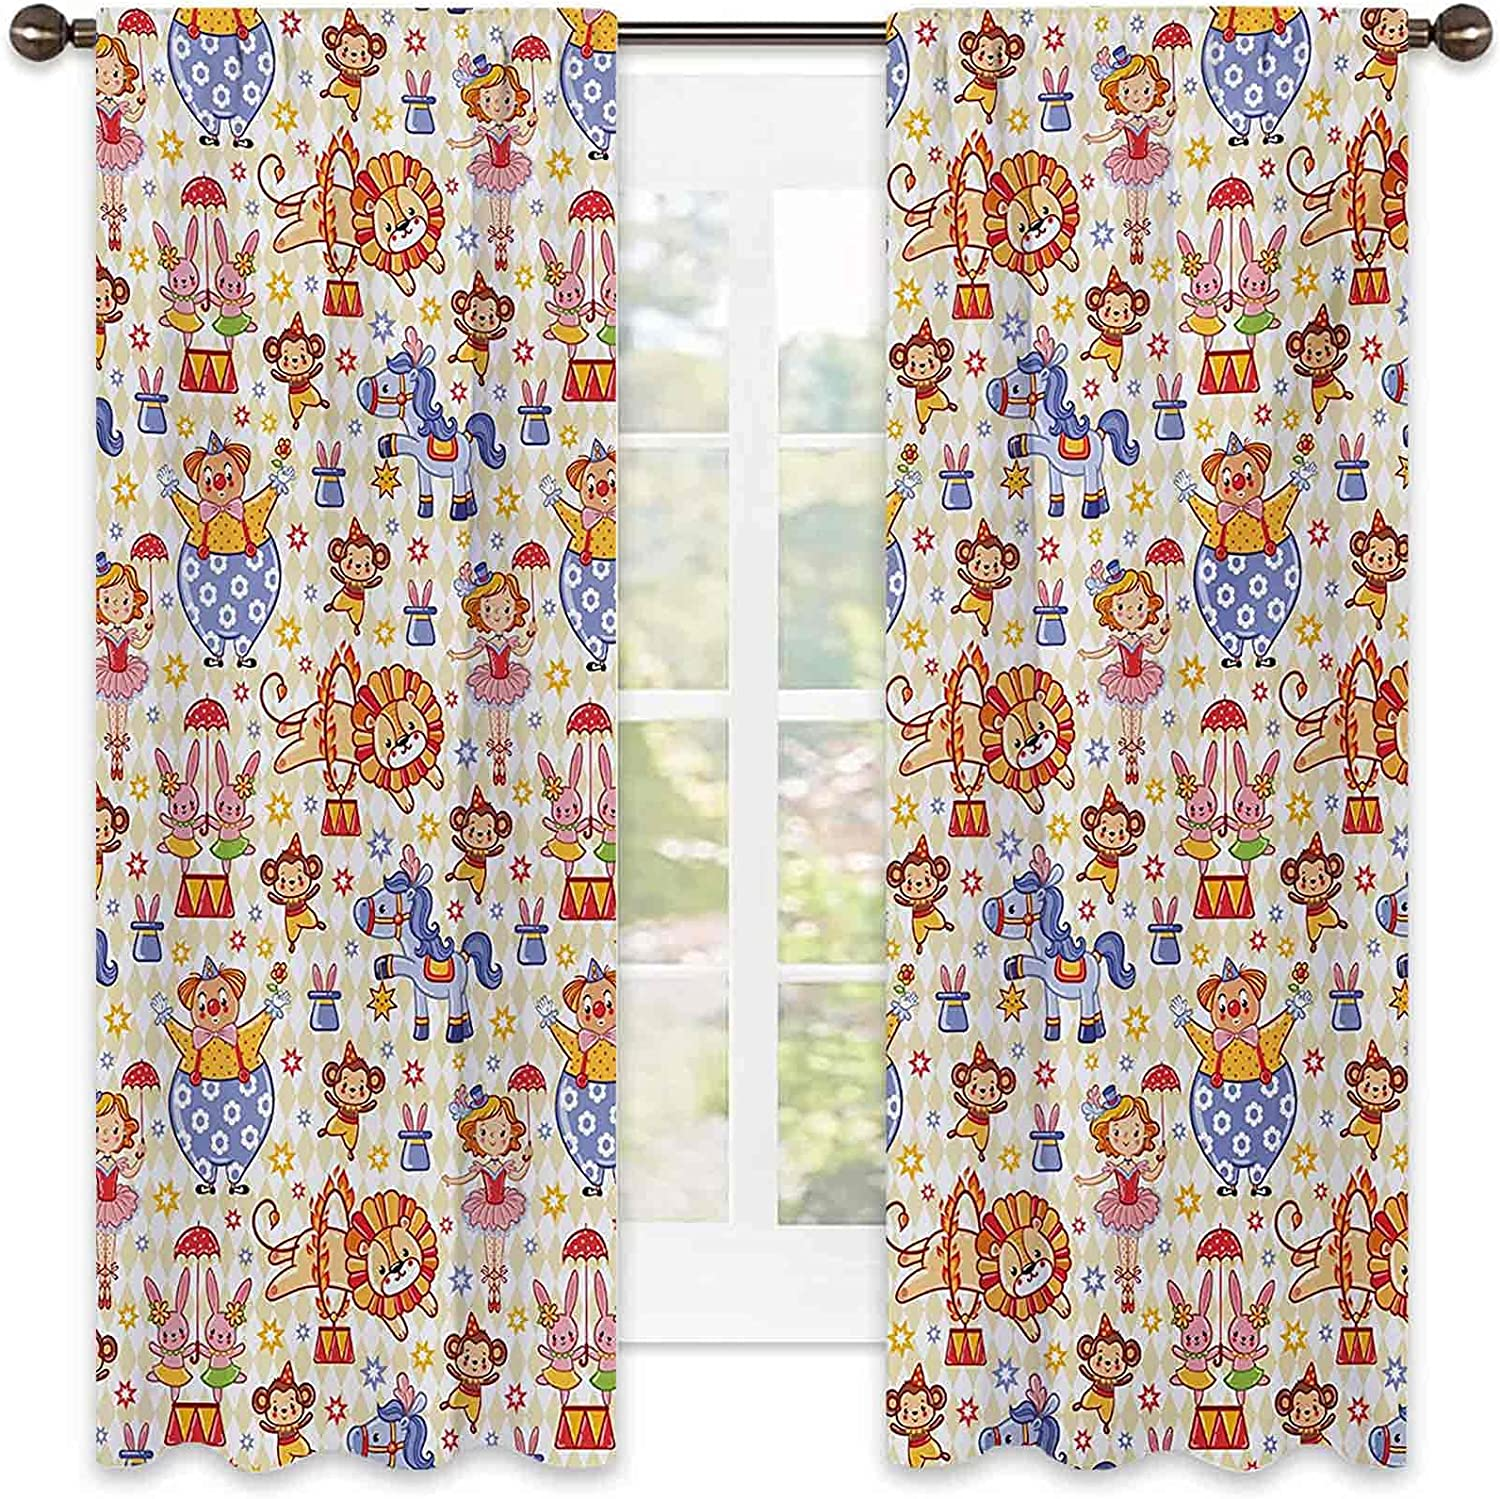 Bedroom Max 90% OFF Rod Pocket Max 55% OFF Blackout Kids Theme Circus Curtains Carnival